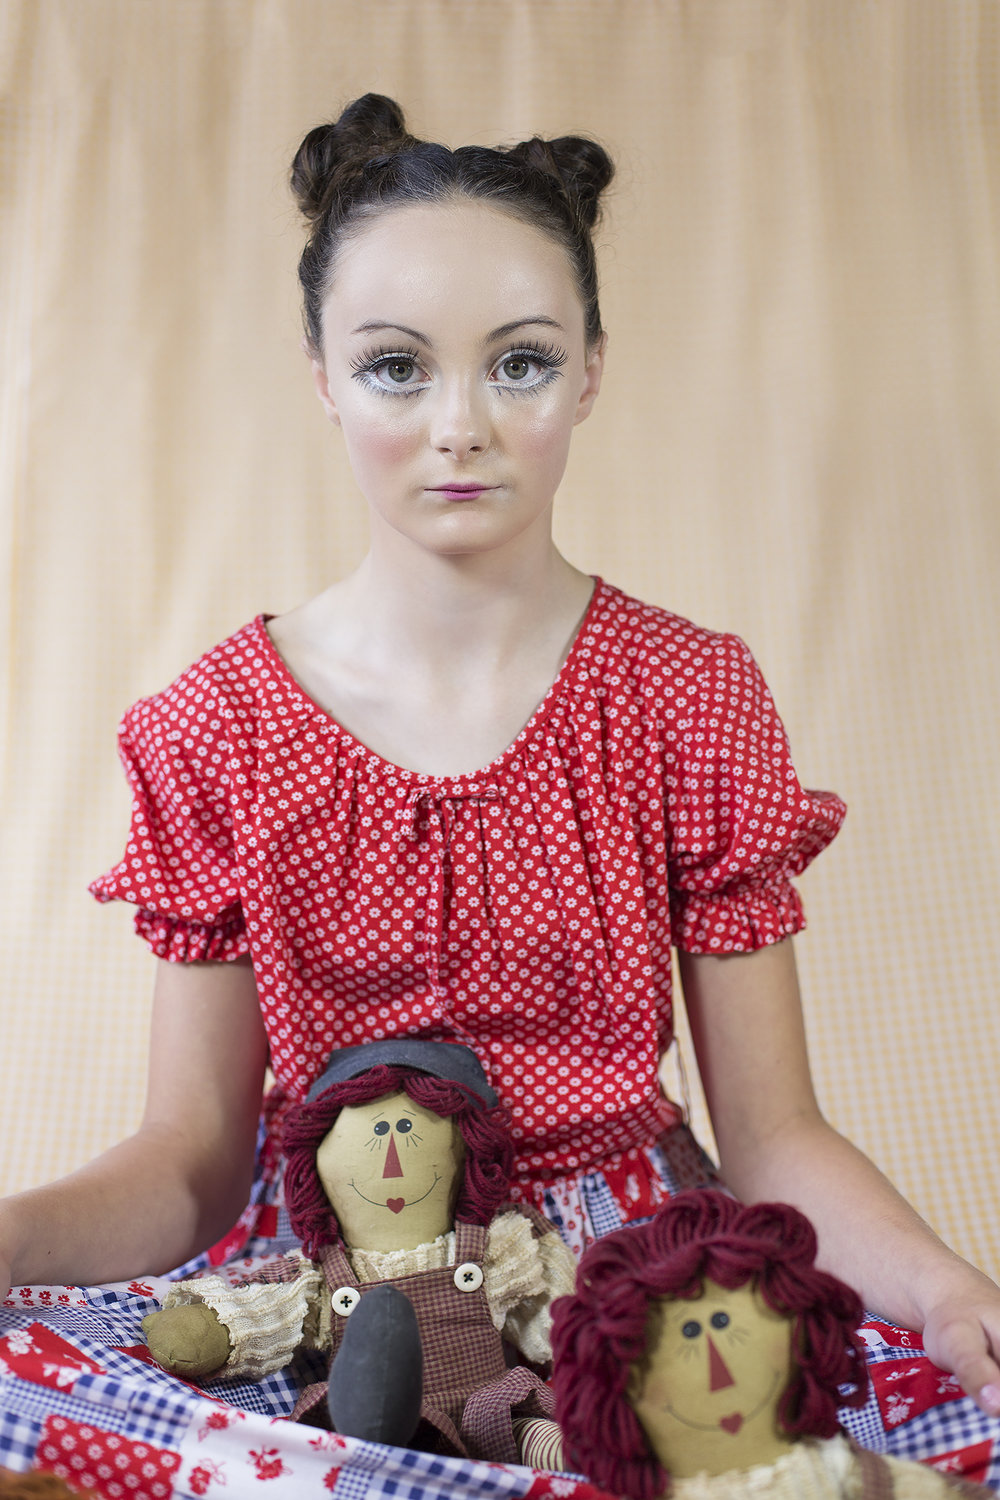 Maddy with older folk dolls from the USA